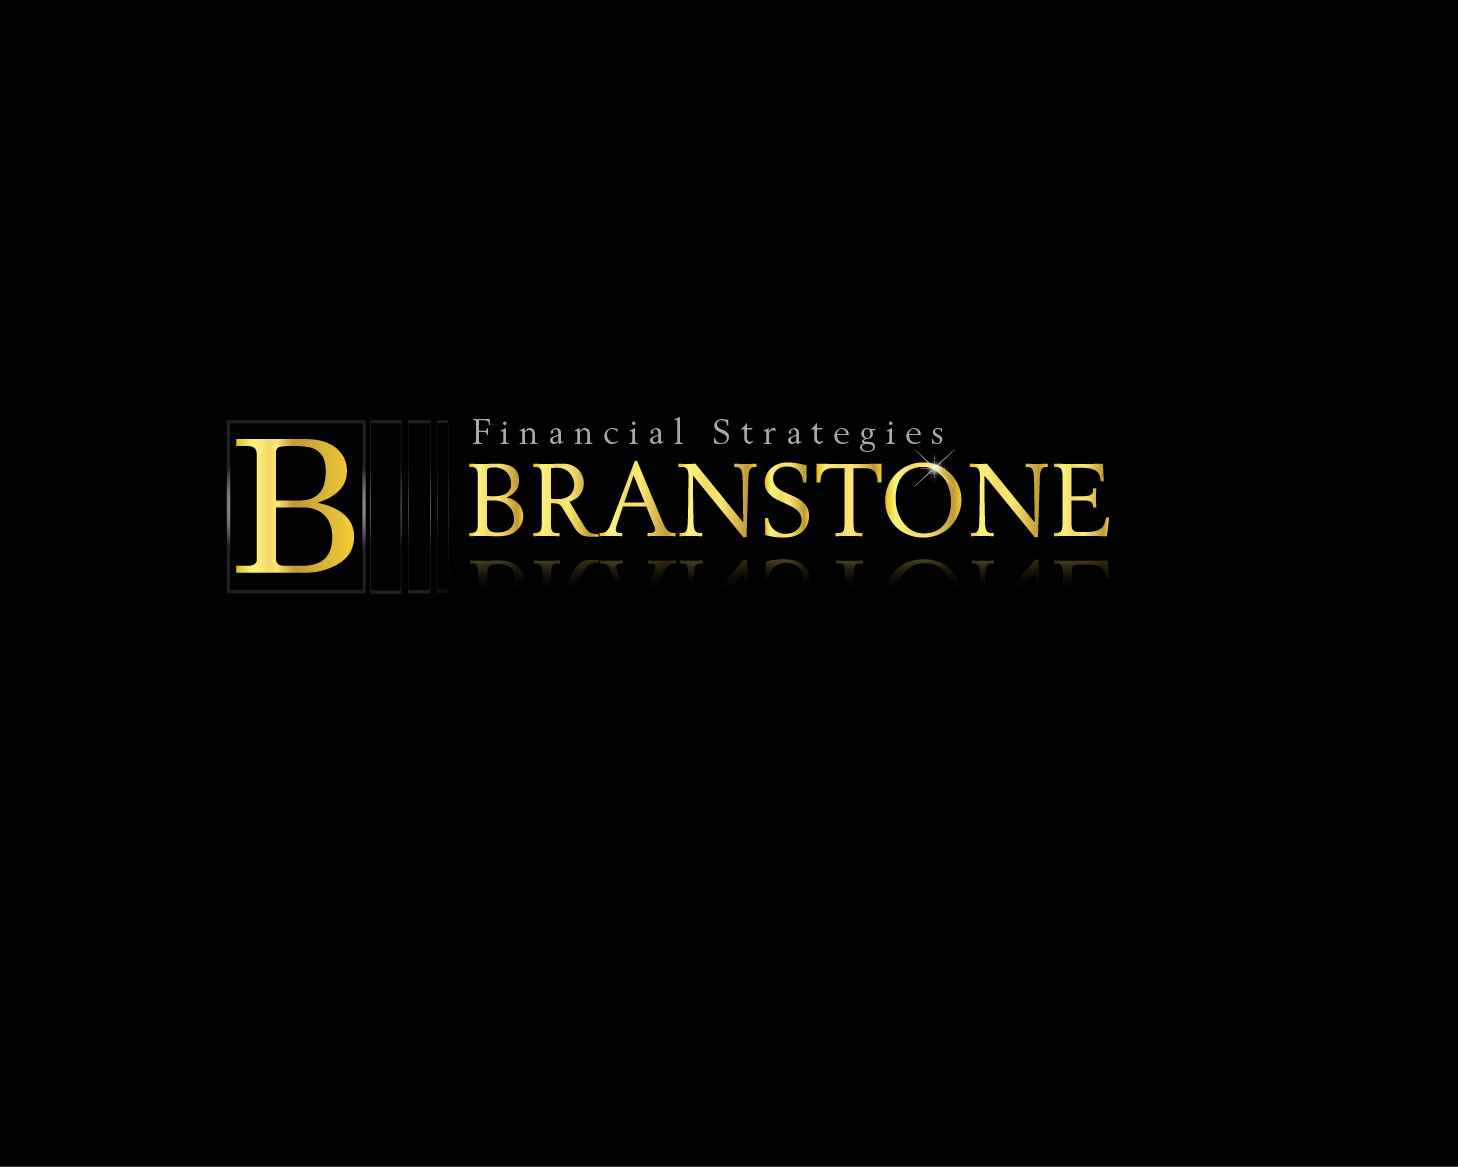 Logo Design by Rowel Samson - Entry No. 187 in the Logo Design Contest Inspiring Logo Design for Branstone Financial Strategies.